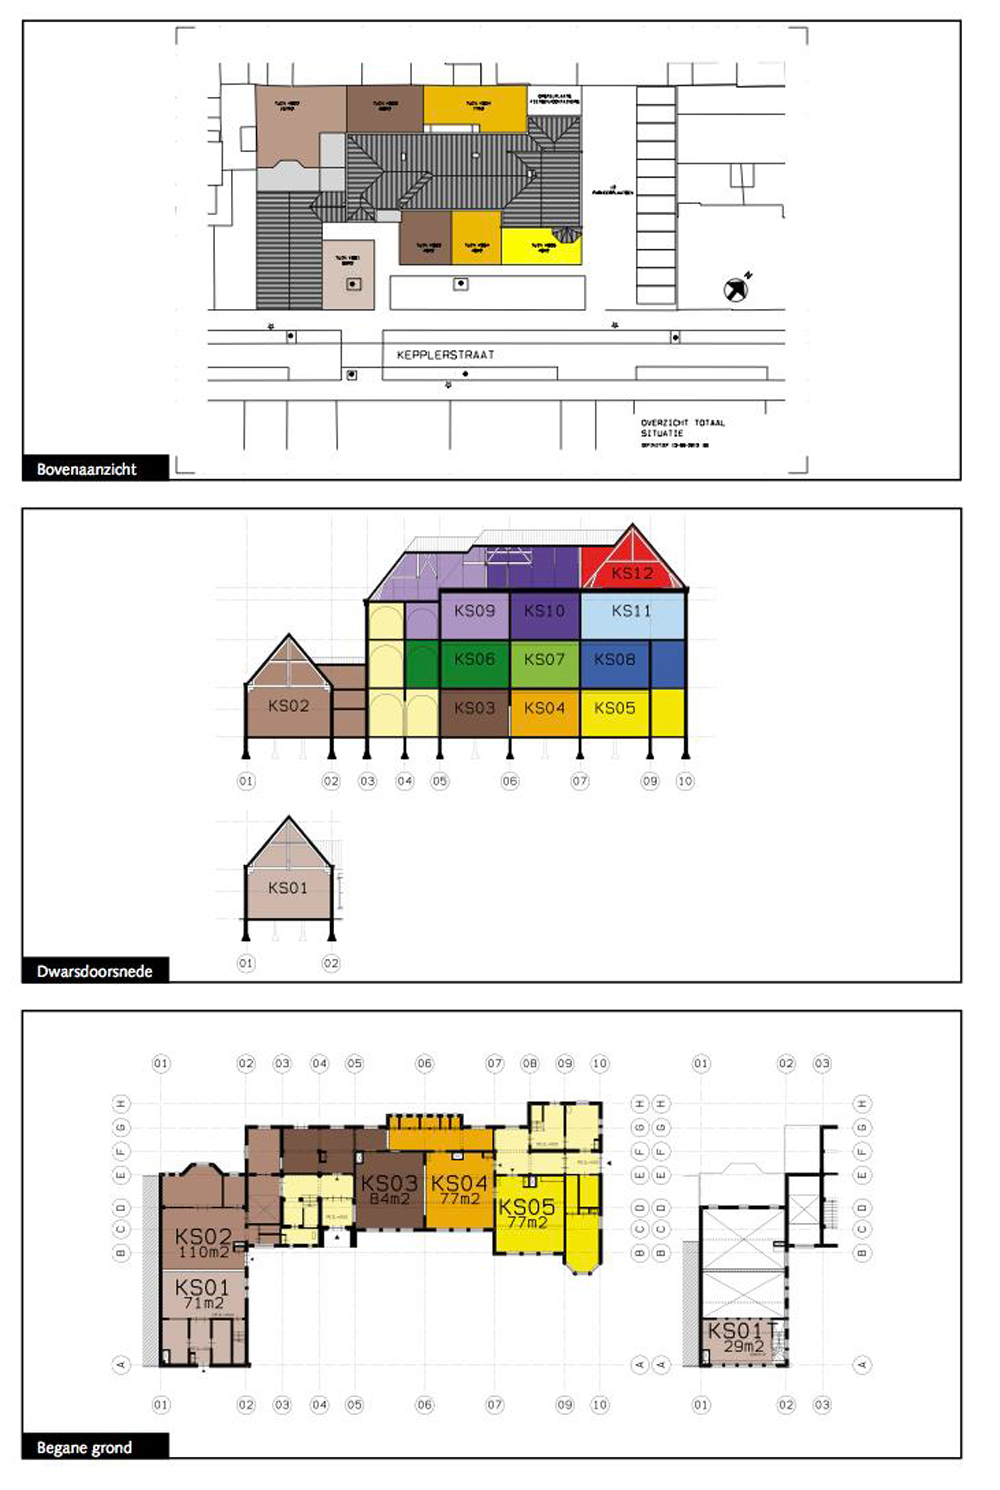 Plans showing how the existing building has been divided up into 'shells' for self-builders